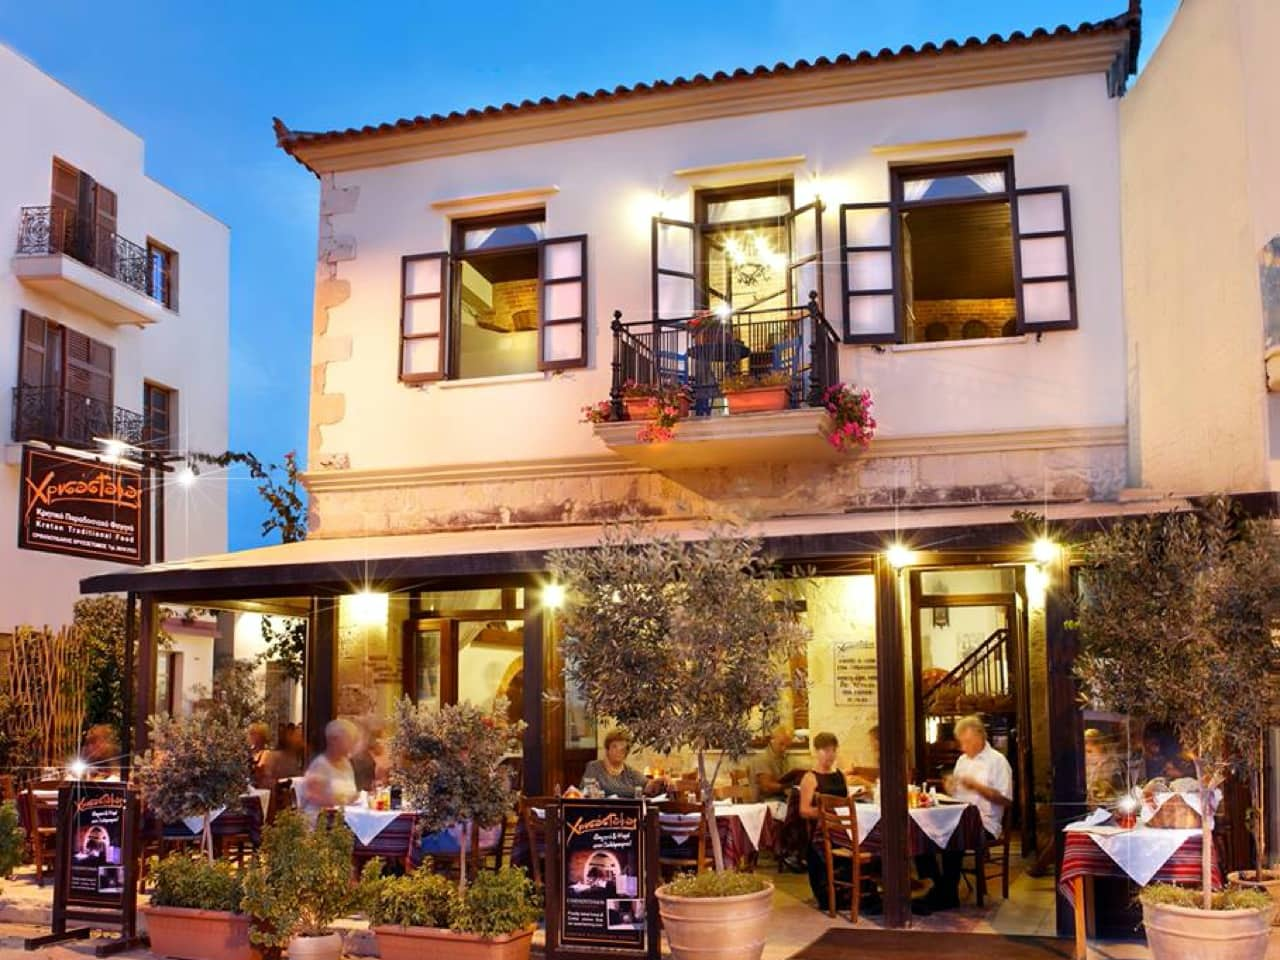 chrisostomos restaurant chania, hrisostomos tavern chania crete, chrisostomos chania crete, best cretan food chania, authentic food chania, gastronomy chania, where to eat chania